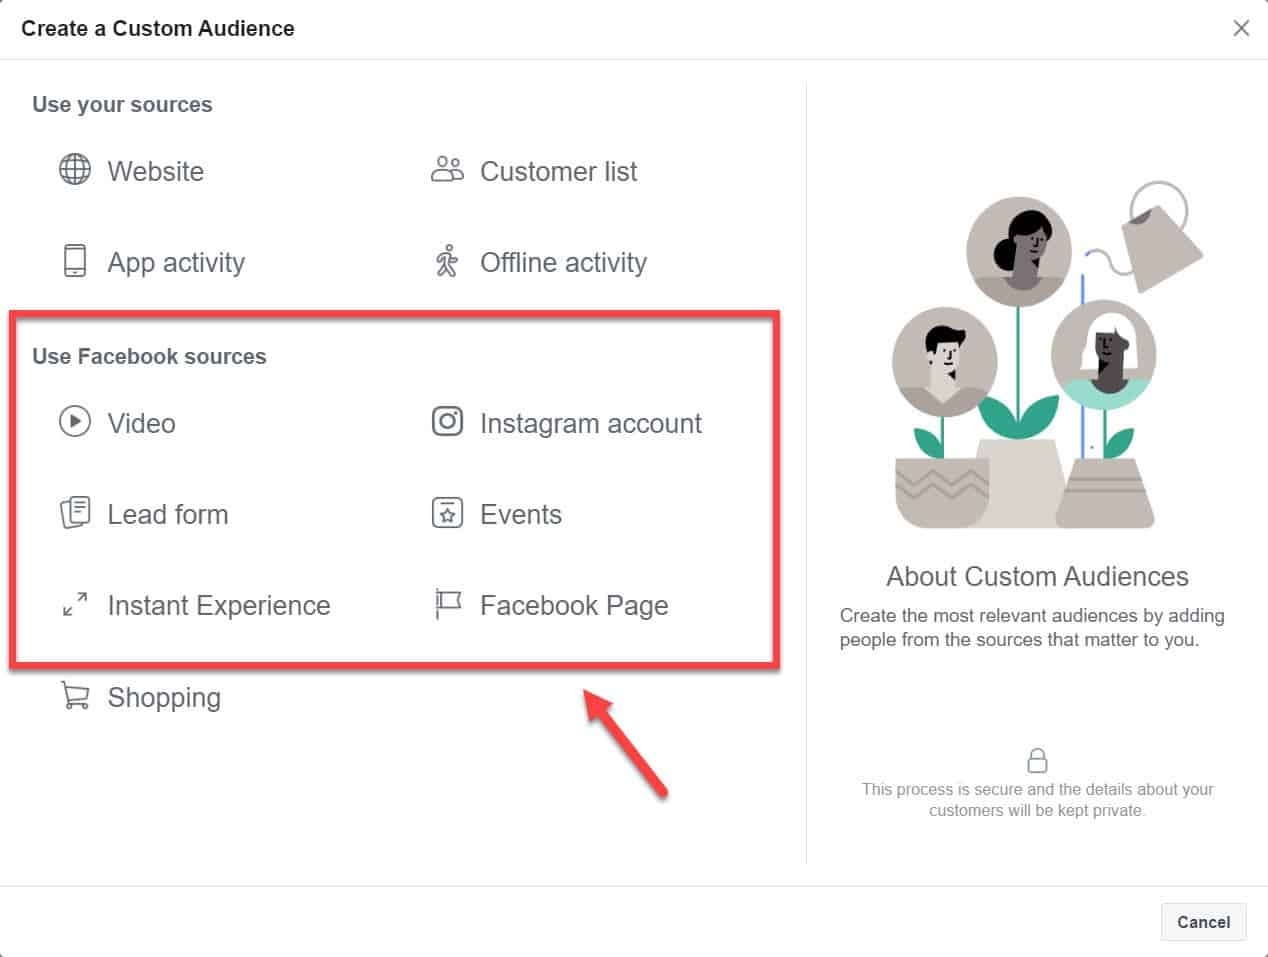 create a custom audience - use facebook sources